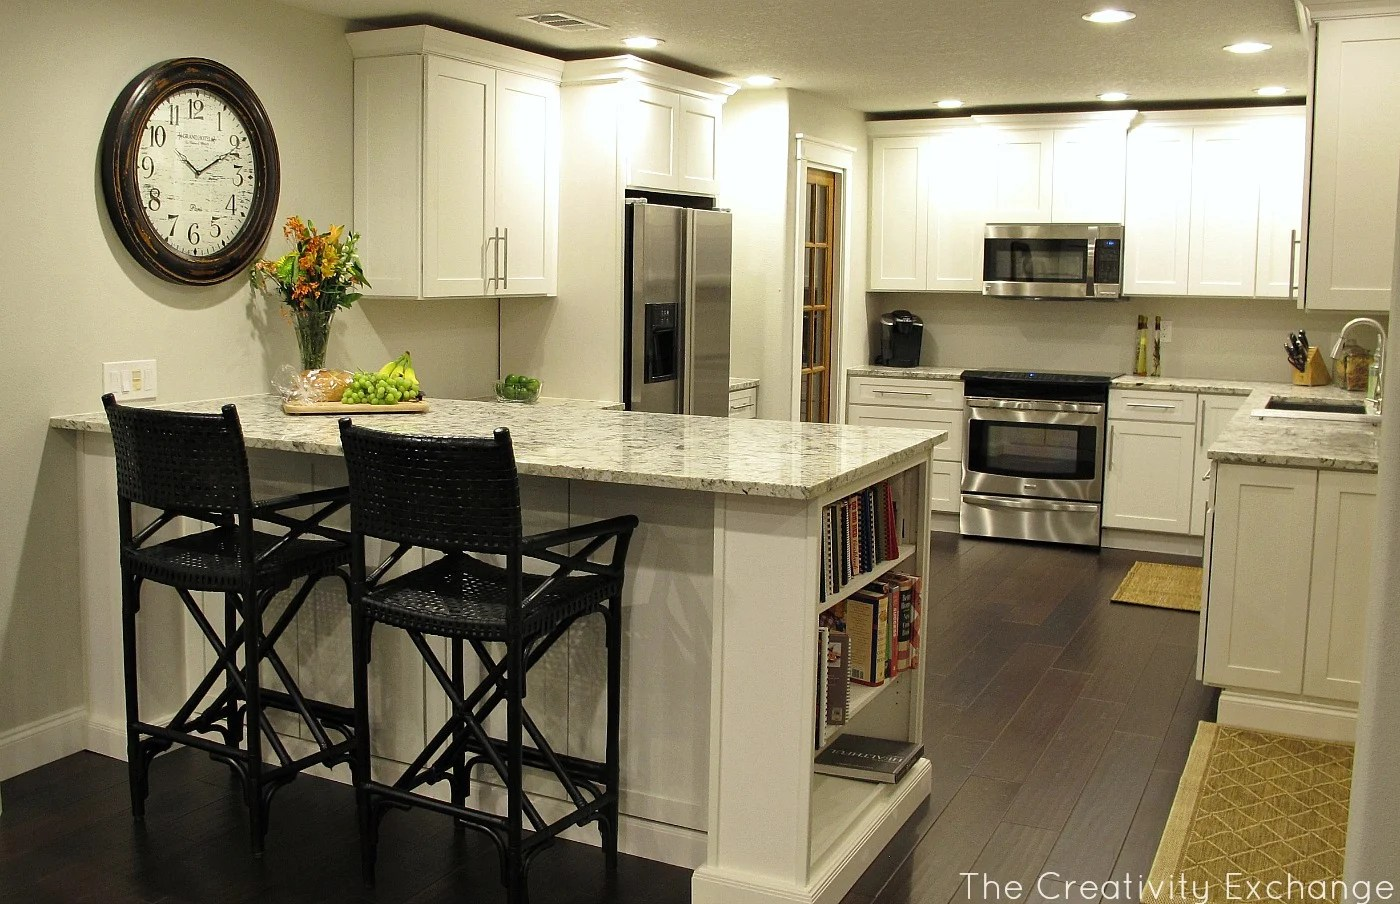 cousin franks amazing kitchen remodel before after how to remodel kitchen Amazing before after kitchen remodel The Creativity Exchange